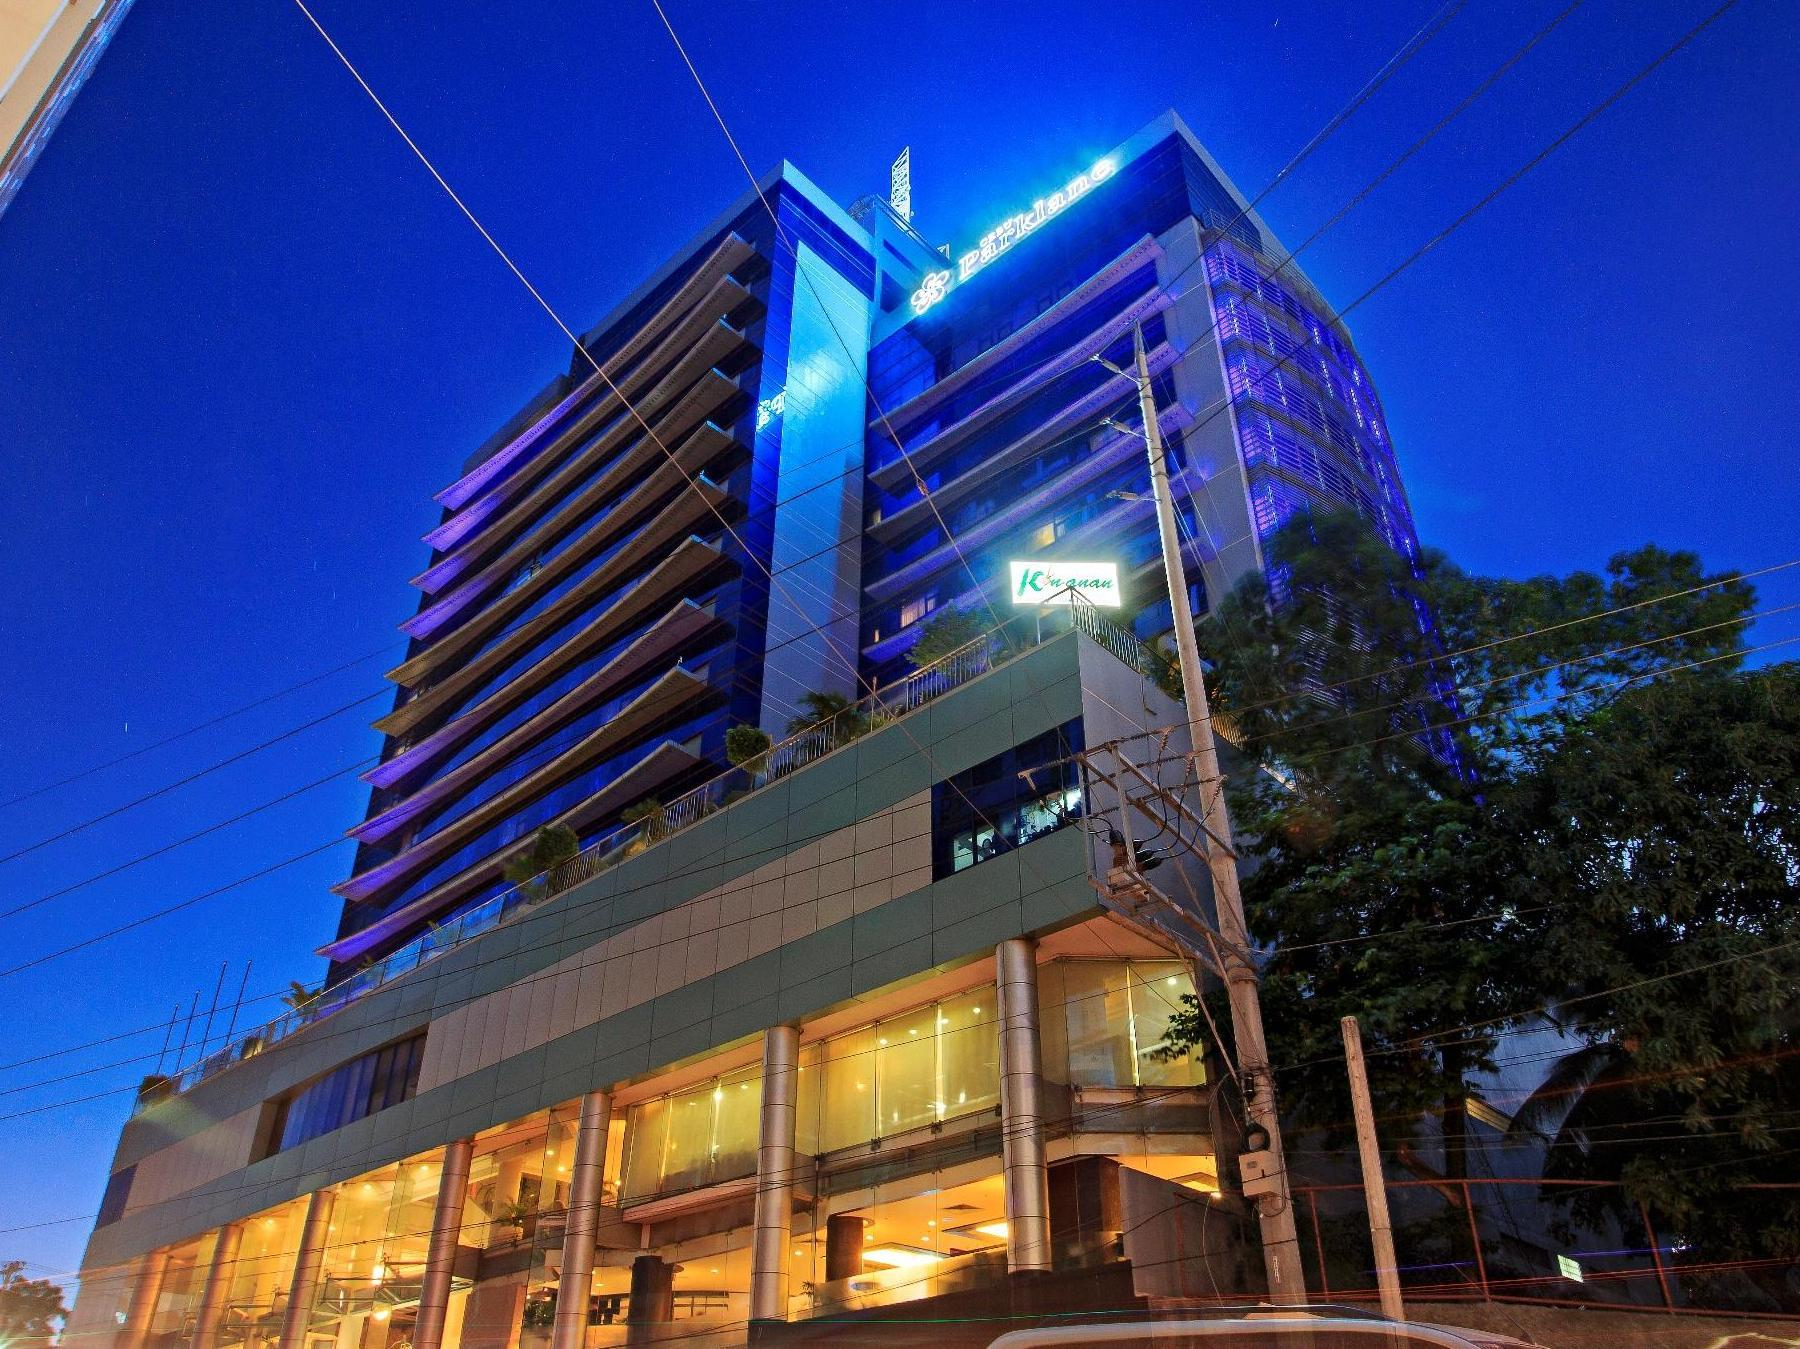 Cebu Parklane International Hotel Cebu - Hotel z zewnątrz